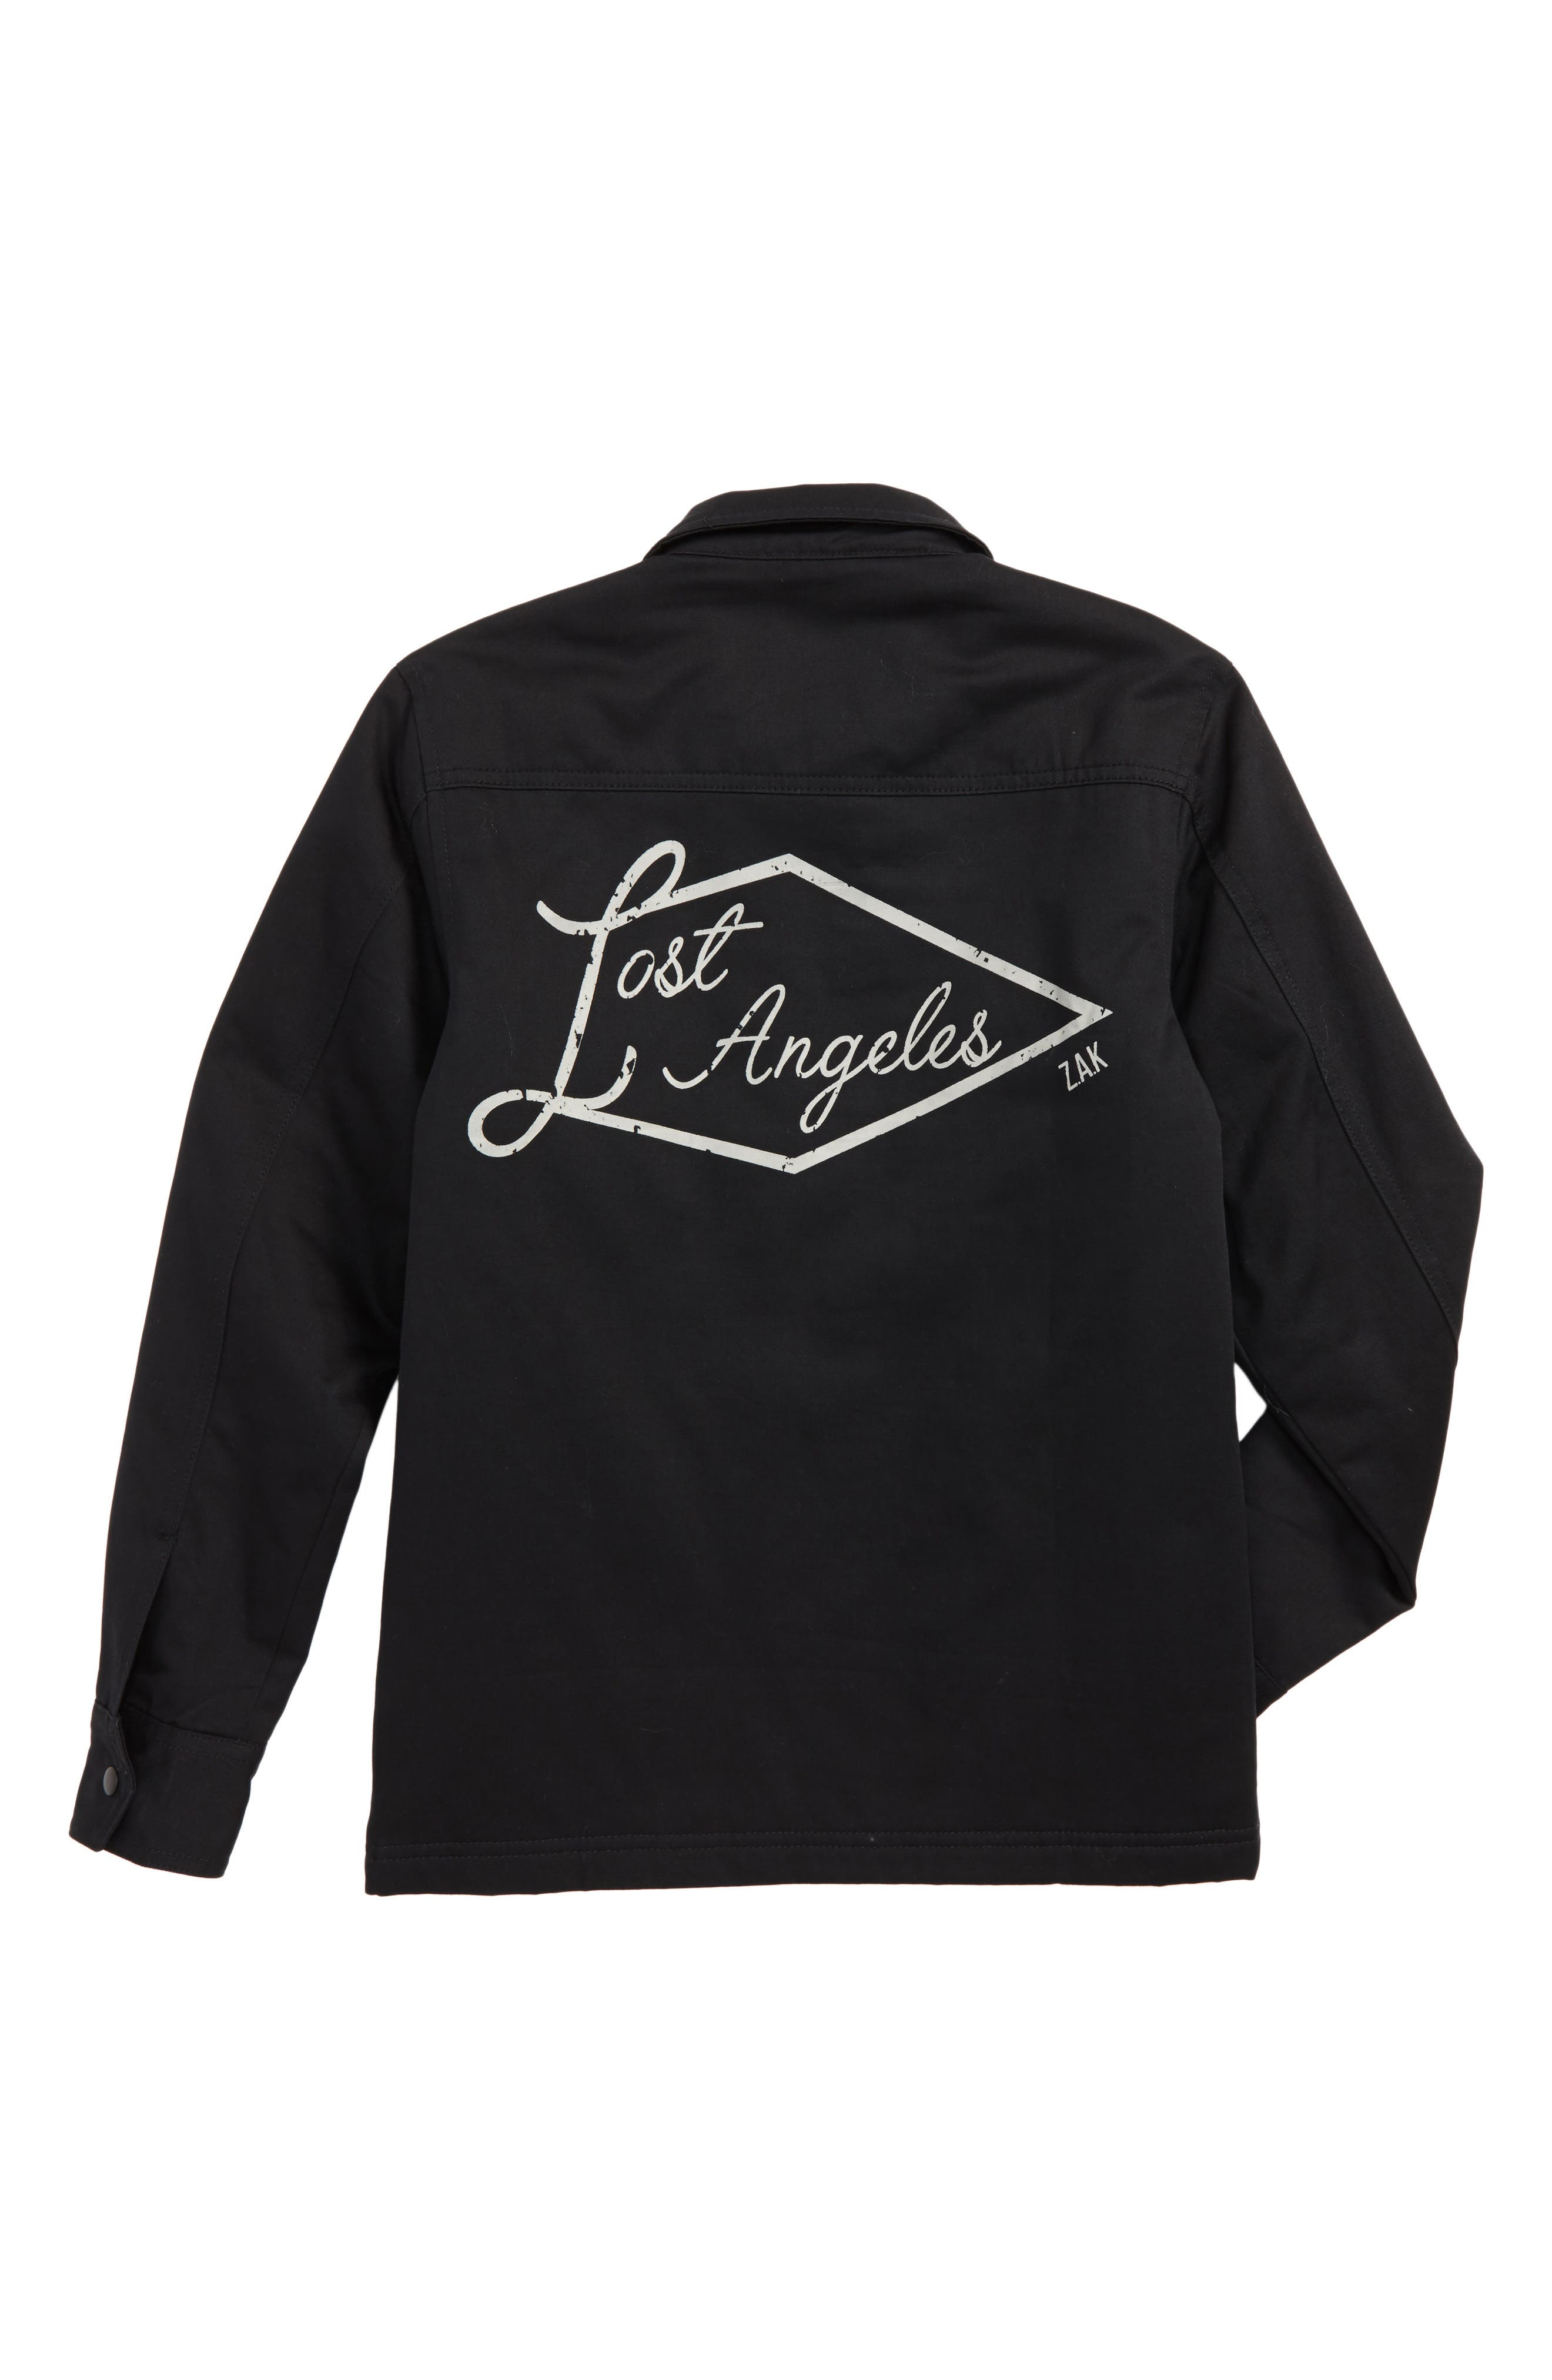 Lost Angeles Jacket,                             Alternate thumbnail 2, color,                             Black